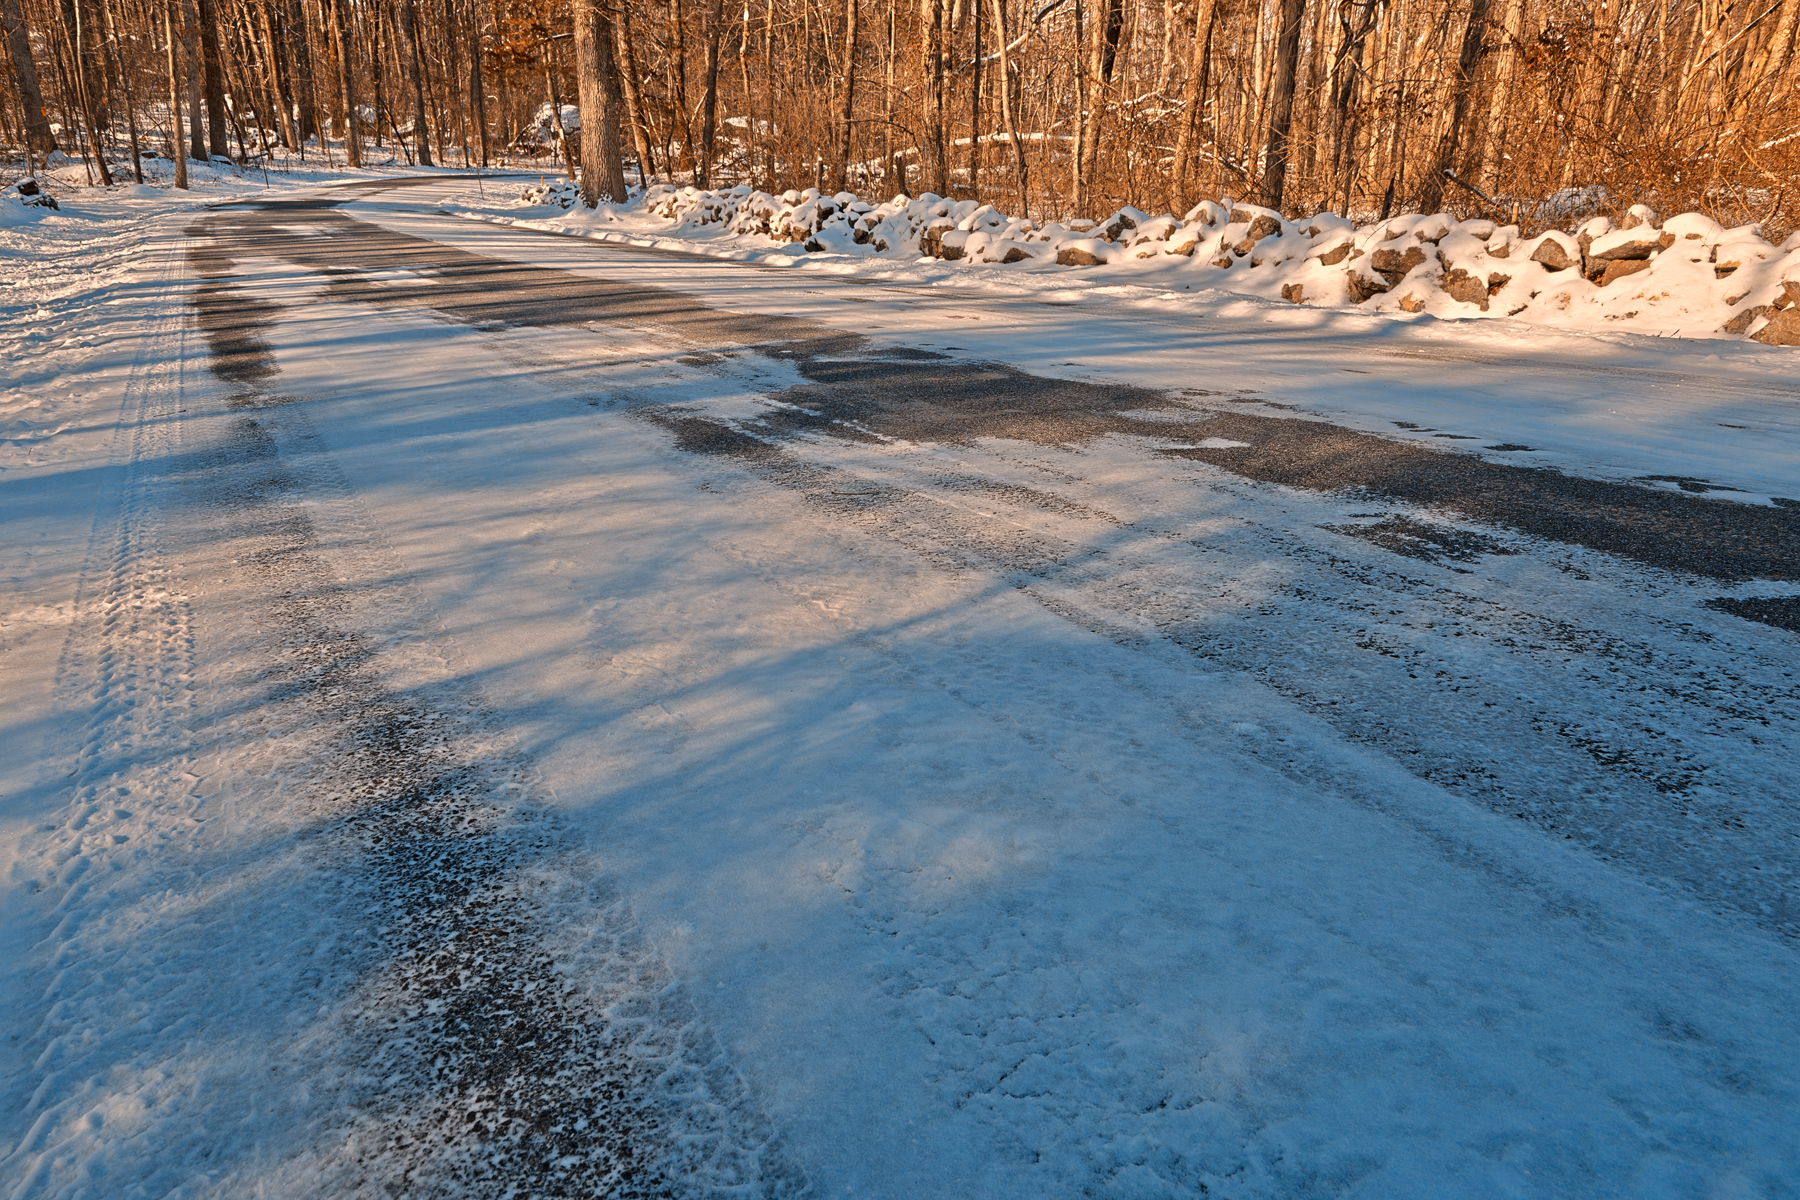 Winding winter road - hdr photo